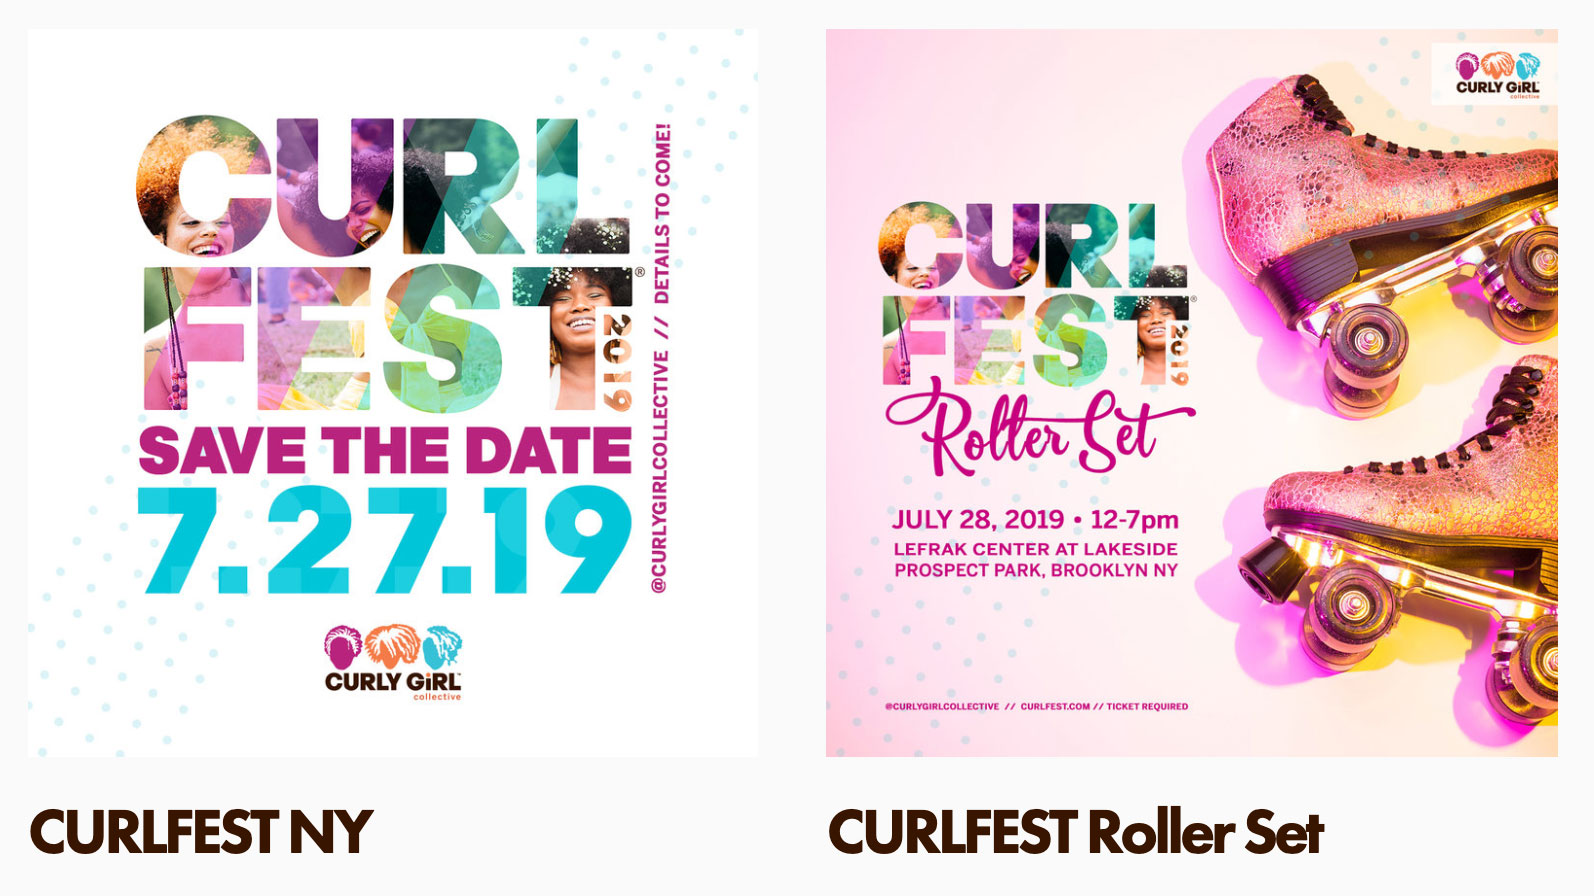 CURLFEST Weekend Flyers